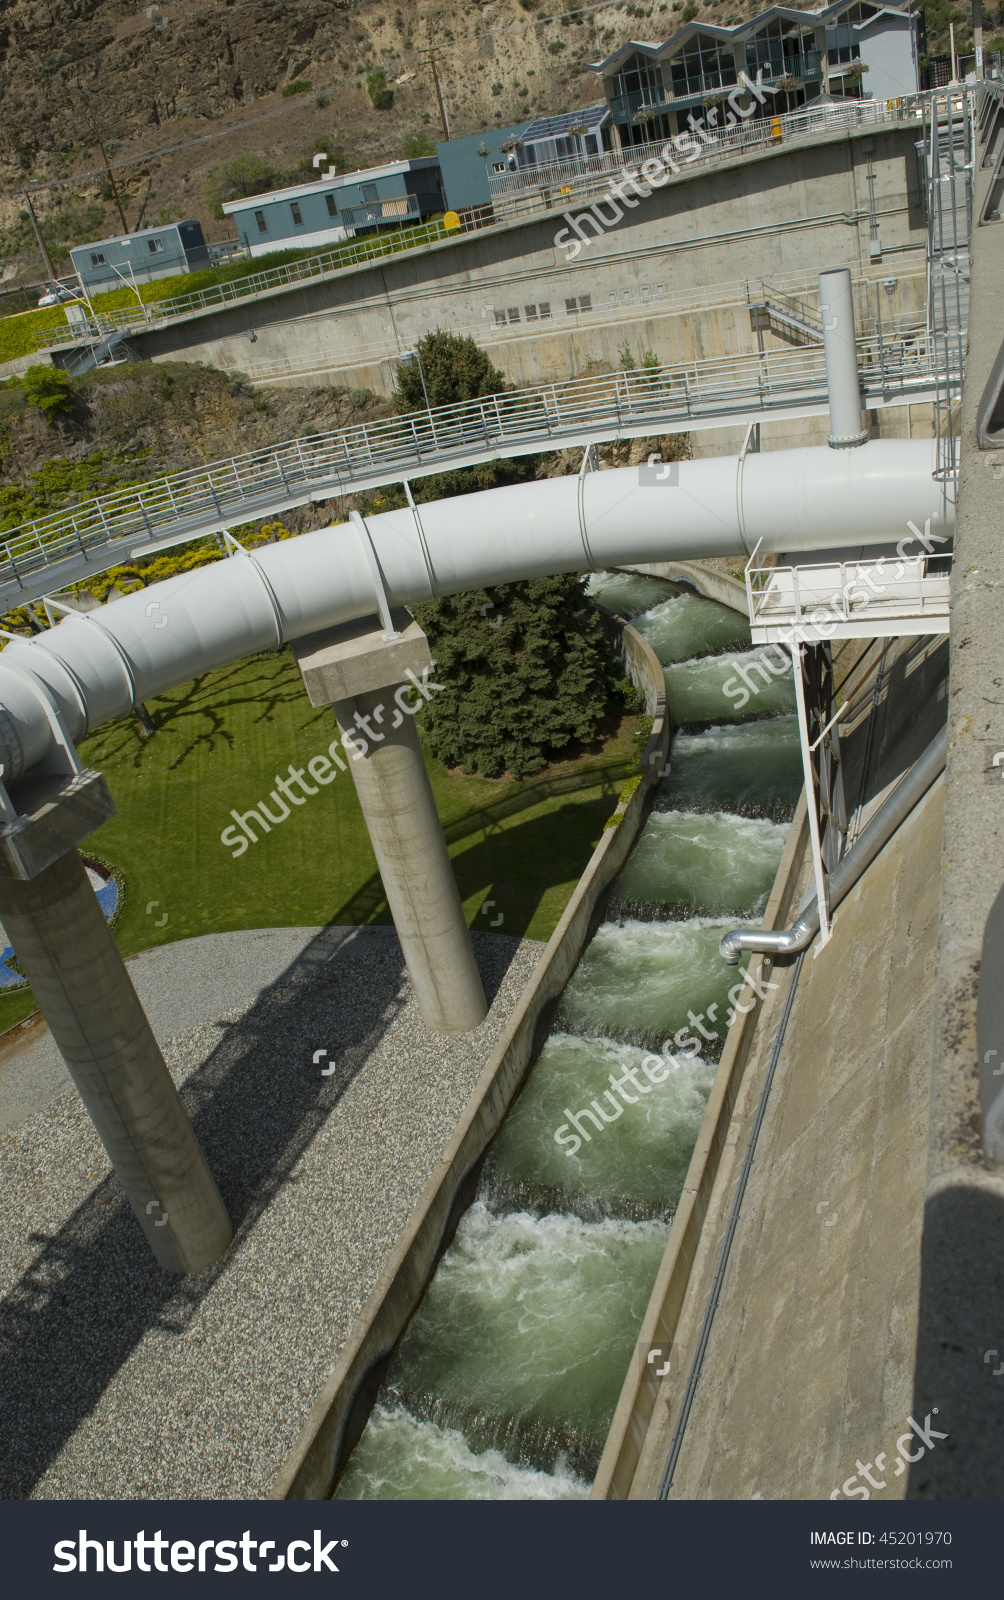 A Fish Ladder Runs Under A Spillway Pipe At A Hydroelectric Dam.